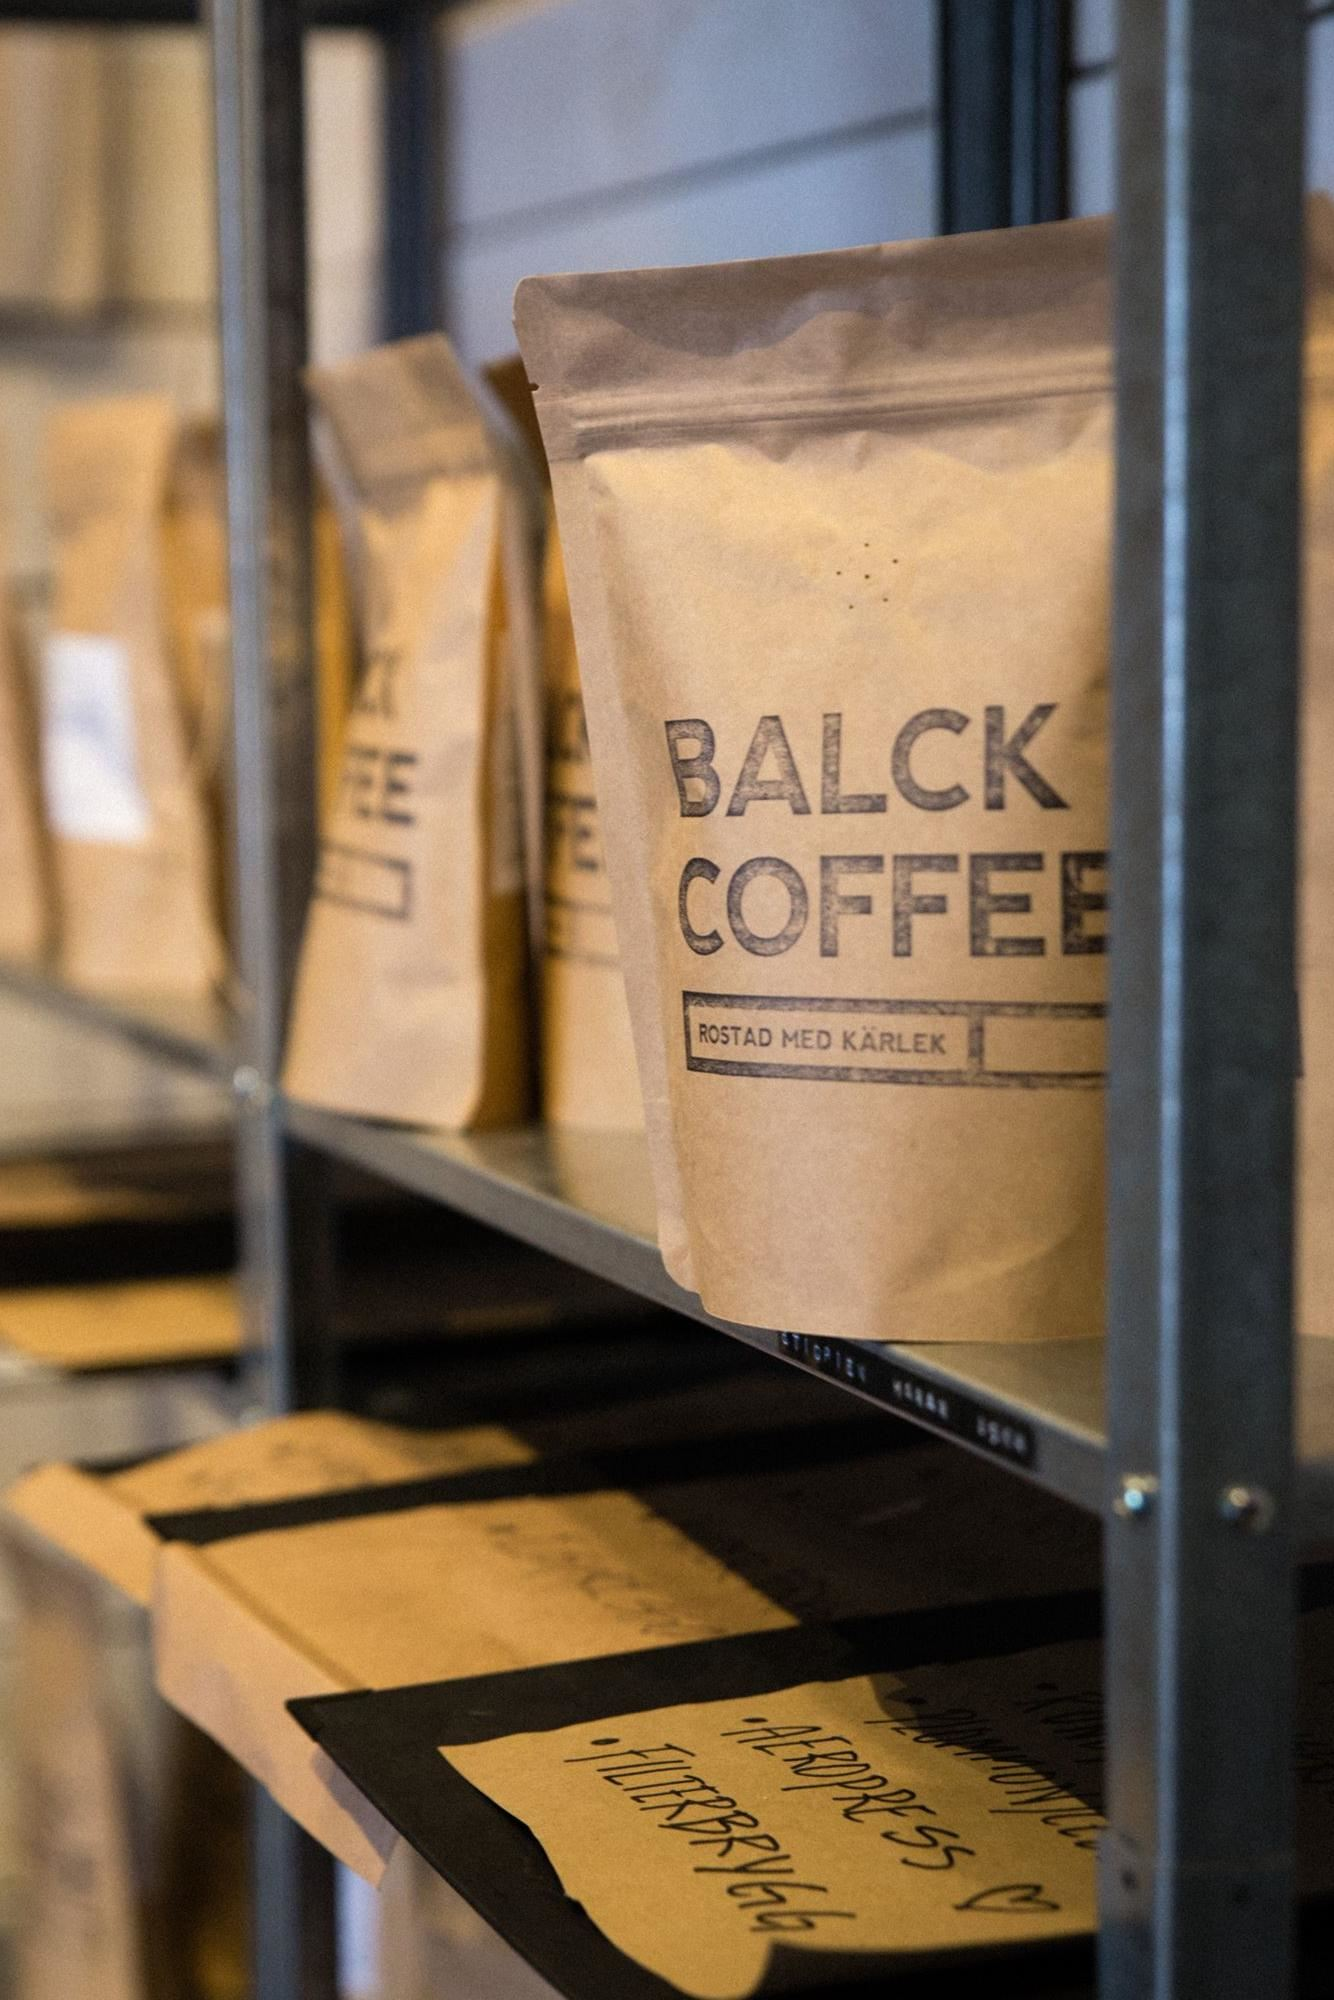 Balck Coffee